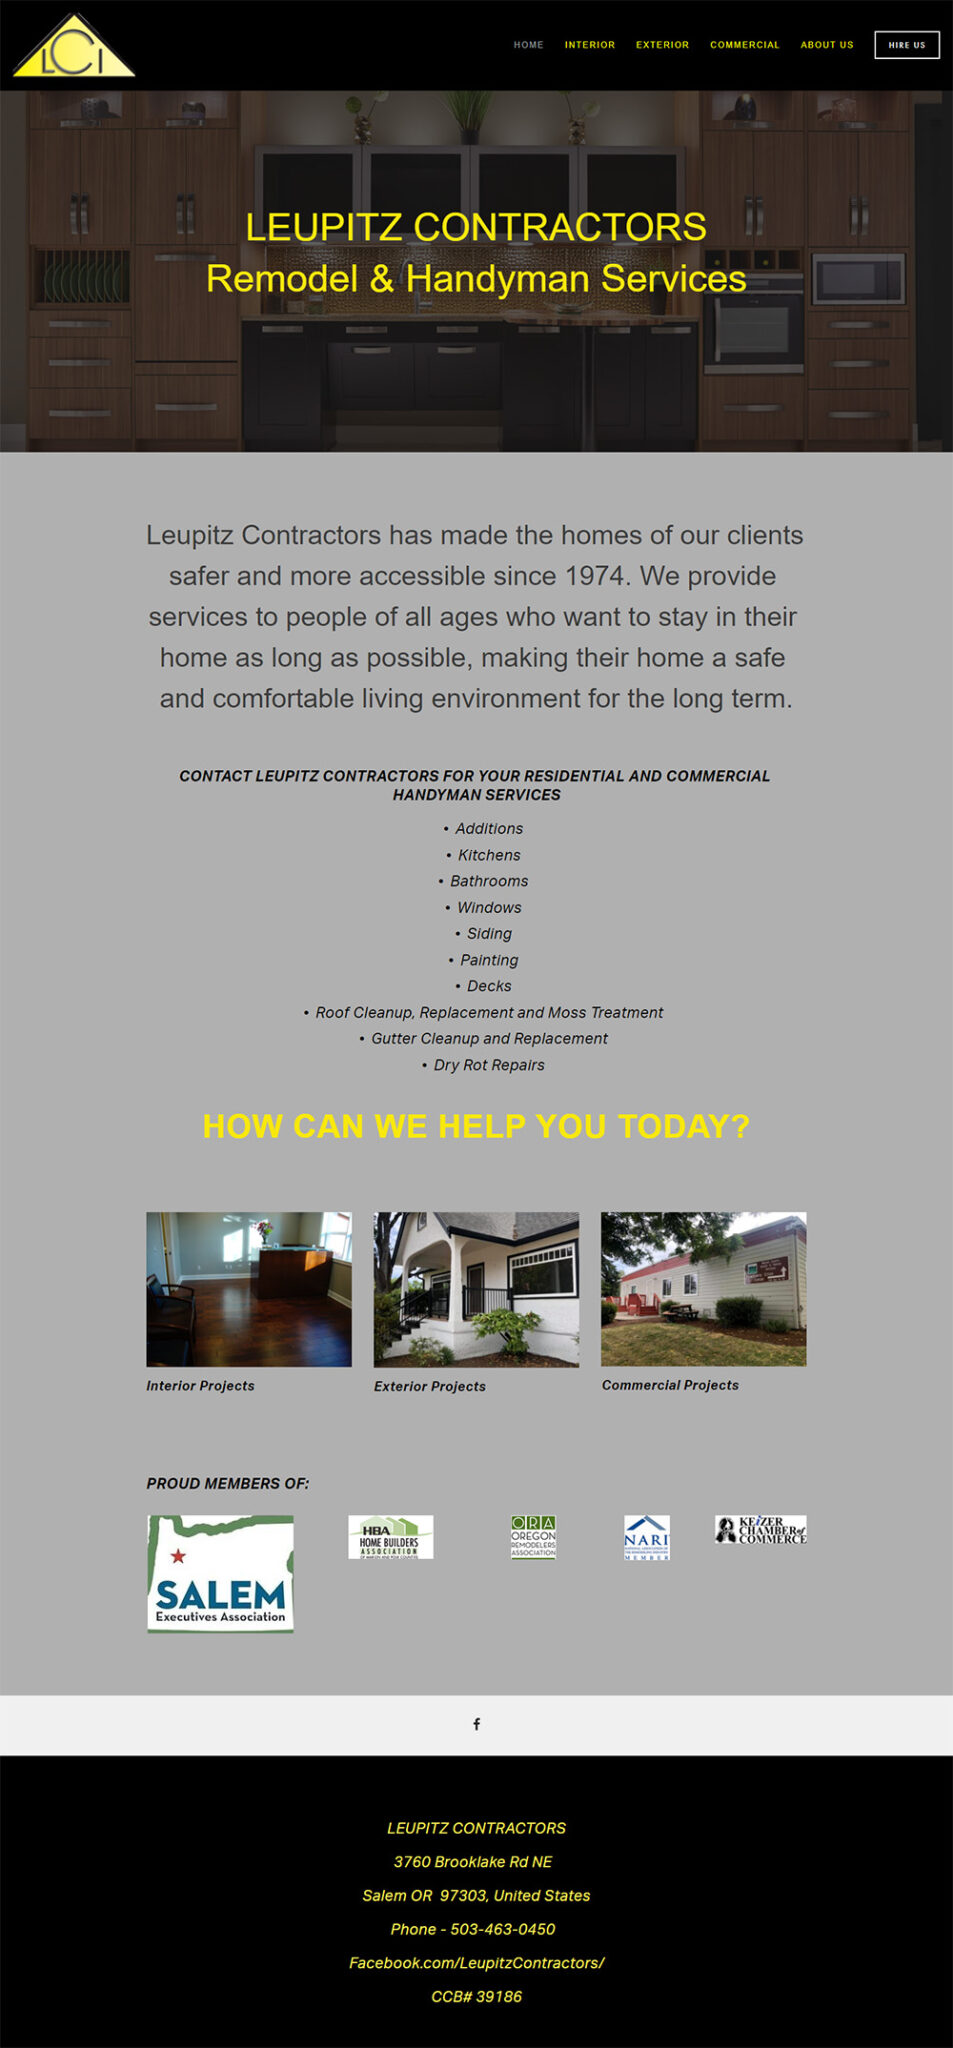 Leupitz Contractors Home page before redesign